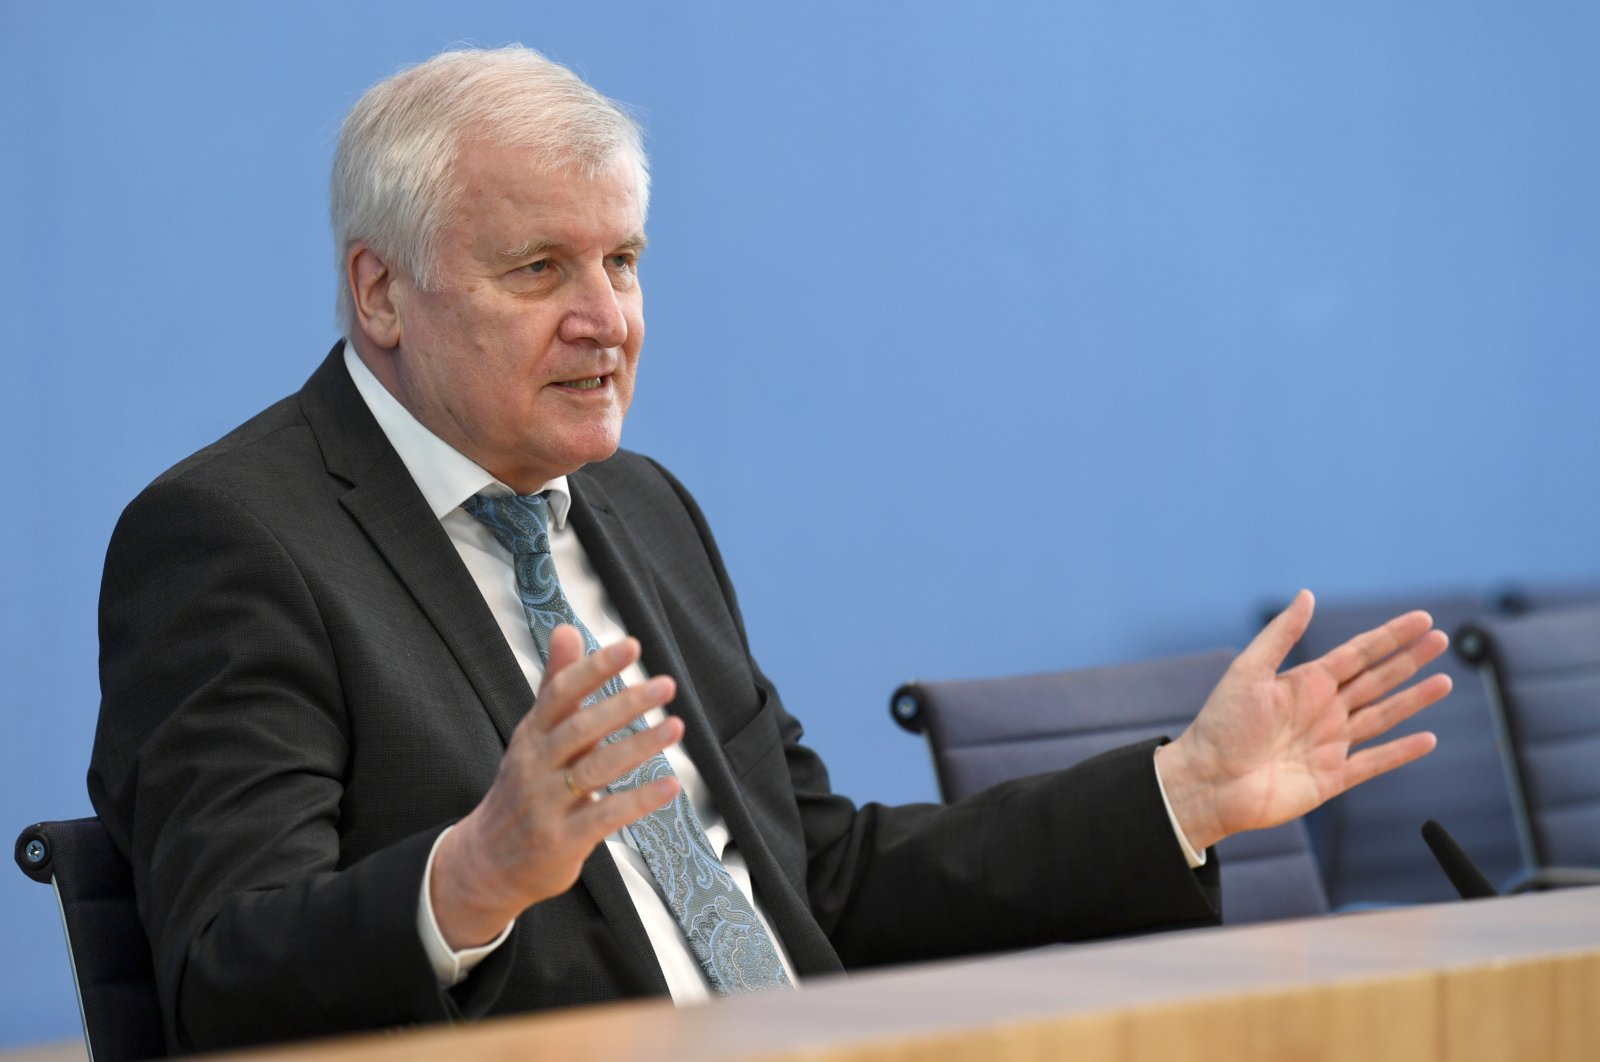 German Interior Minister Horst Seehofer attends a news conference on politically motivated crimes in Germany, Berlin, Germany, May 4, 2021. (REUTERS Photo)